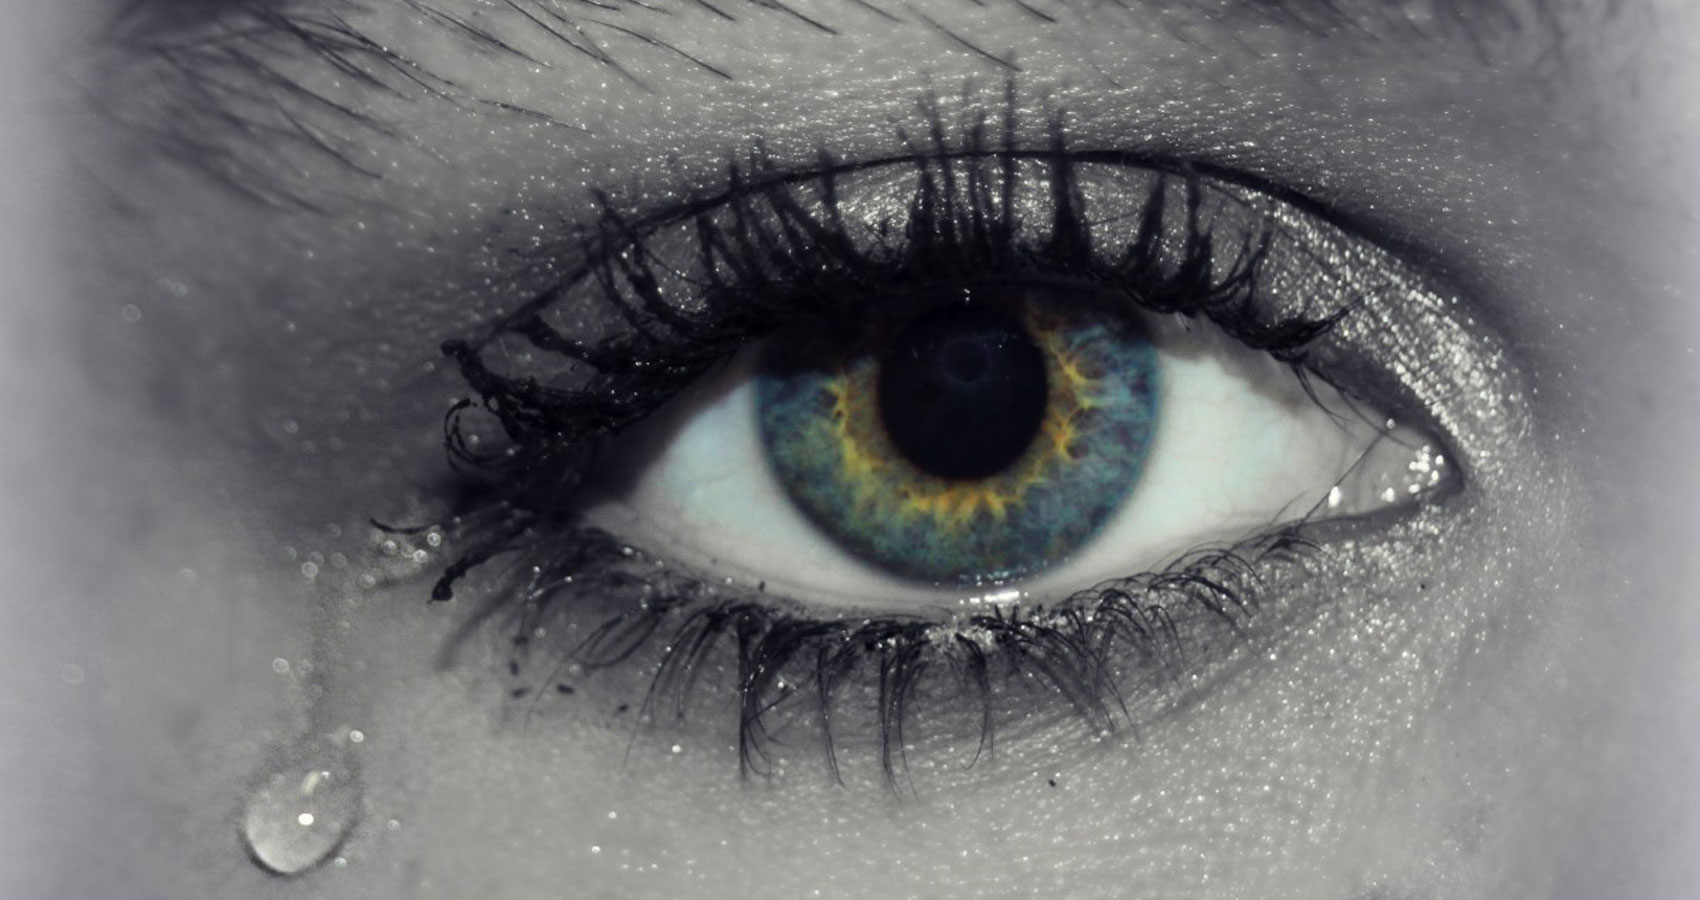 Tears, a poem written by Ana Silva at Spillwords.com